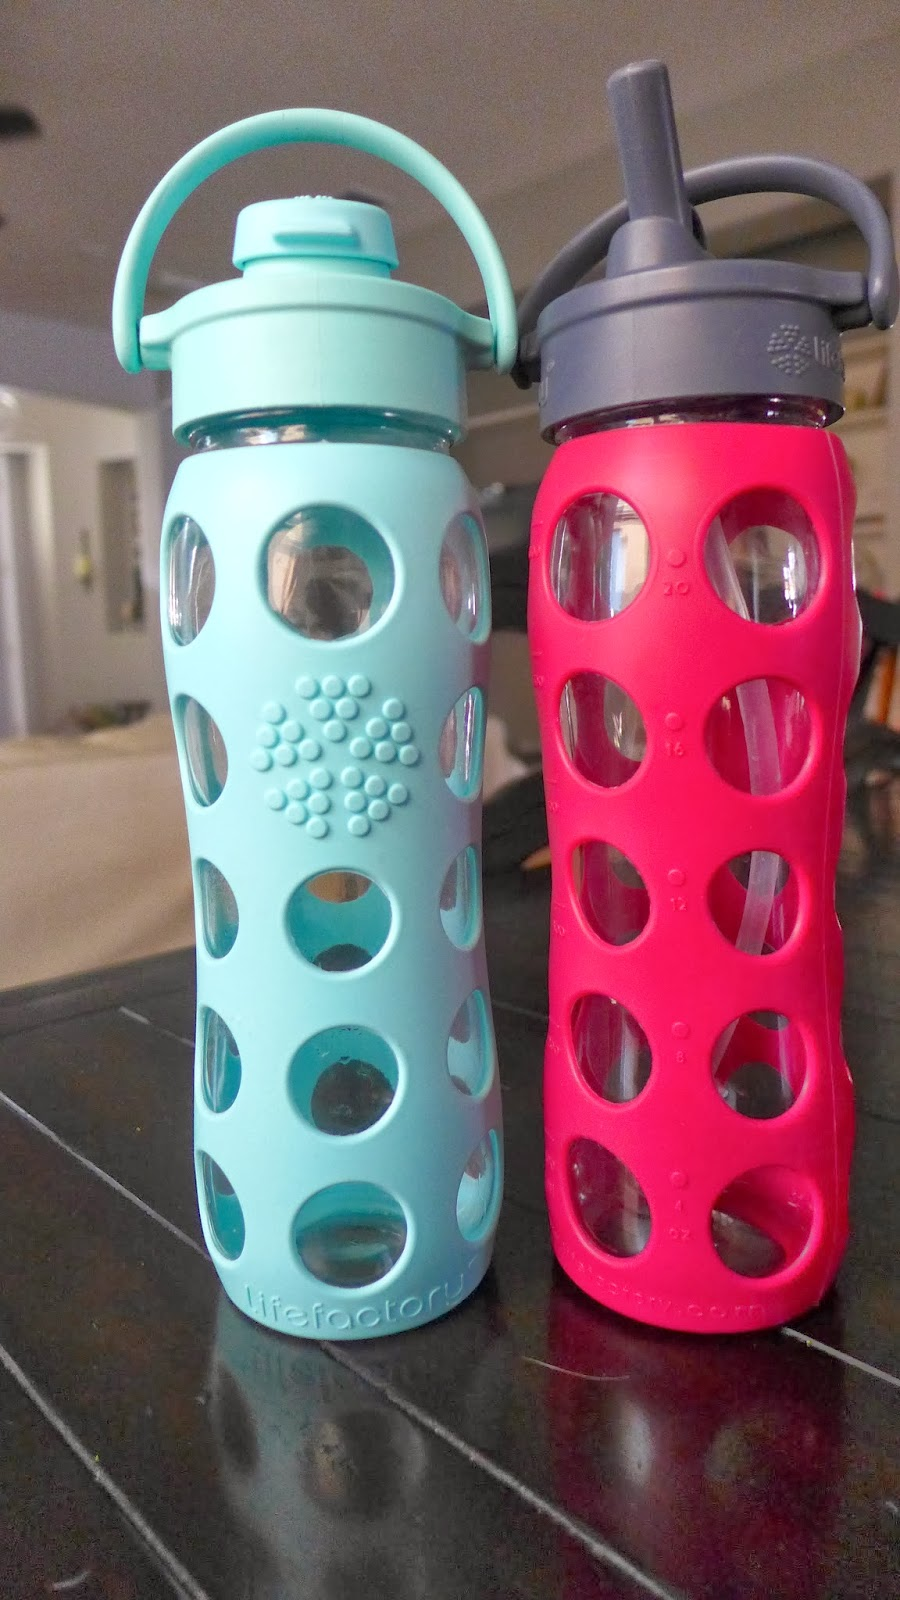 LifeFactory Water Bottles #water